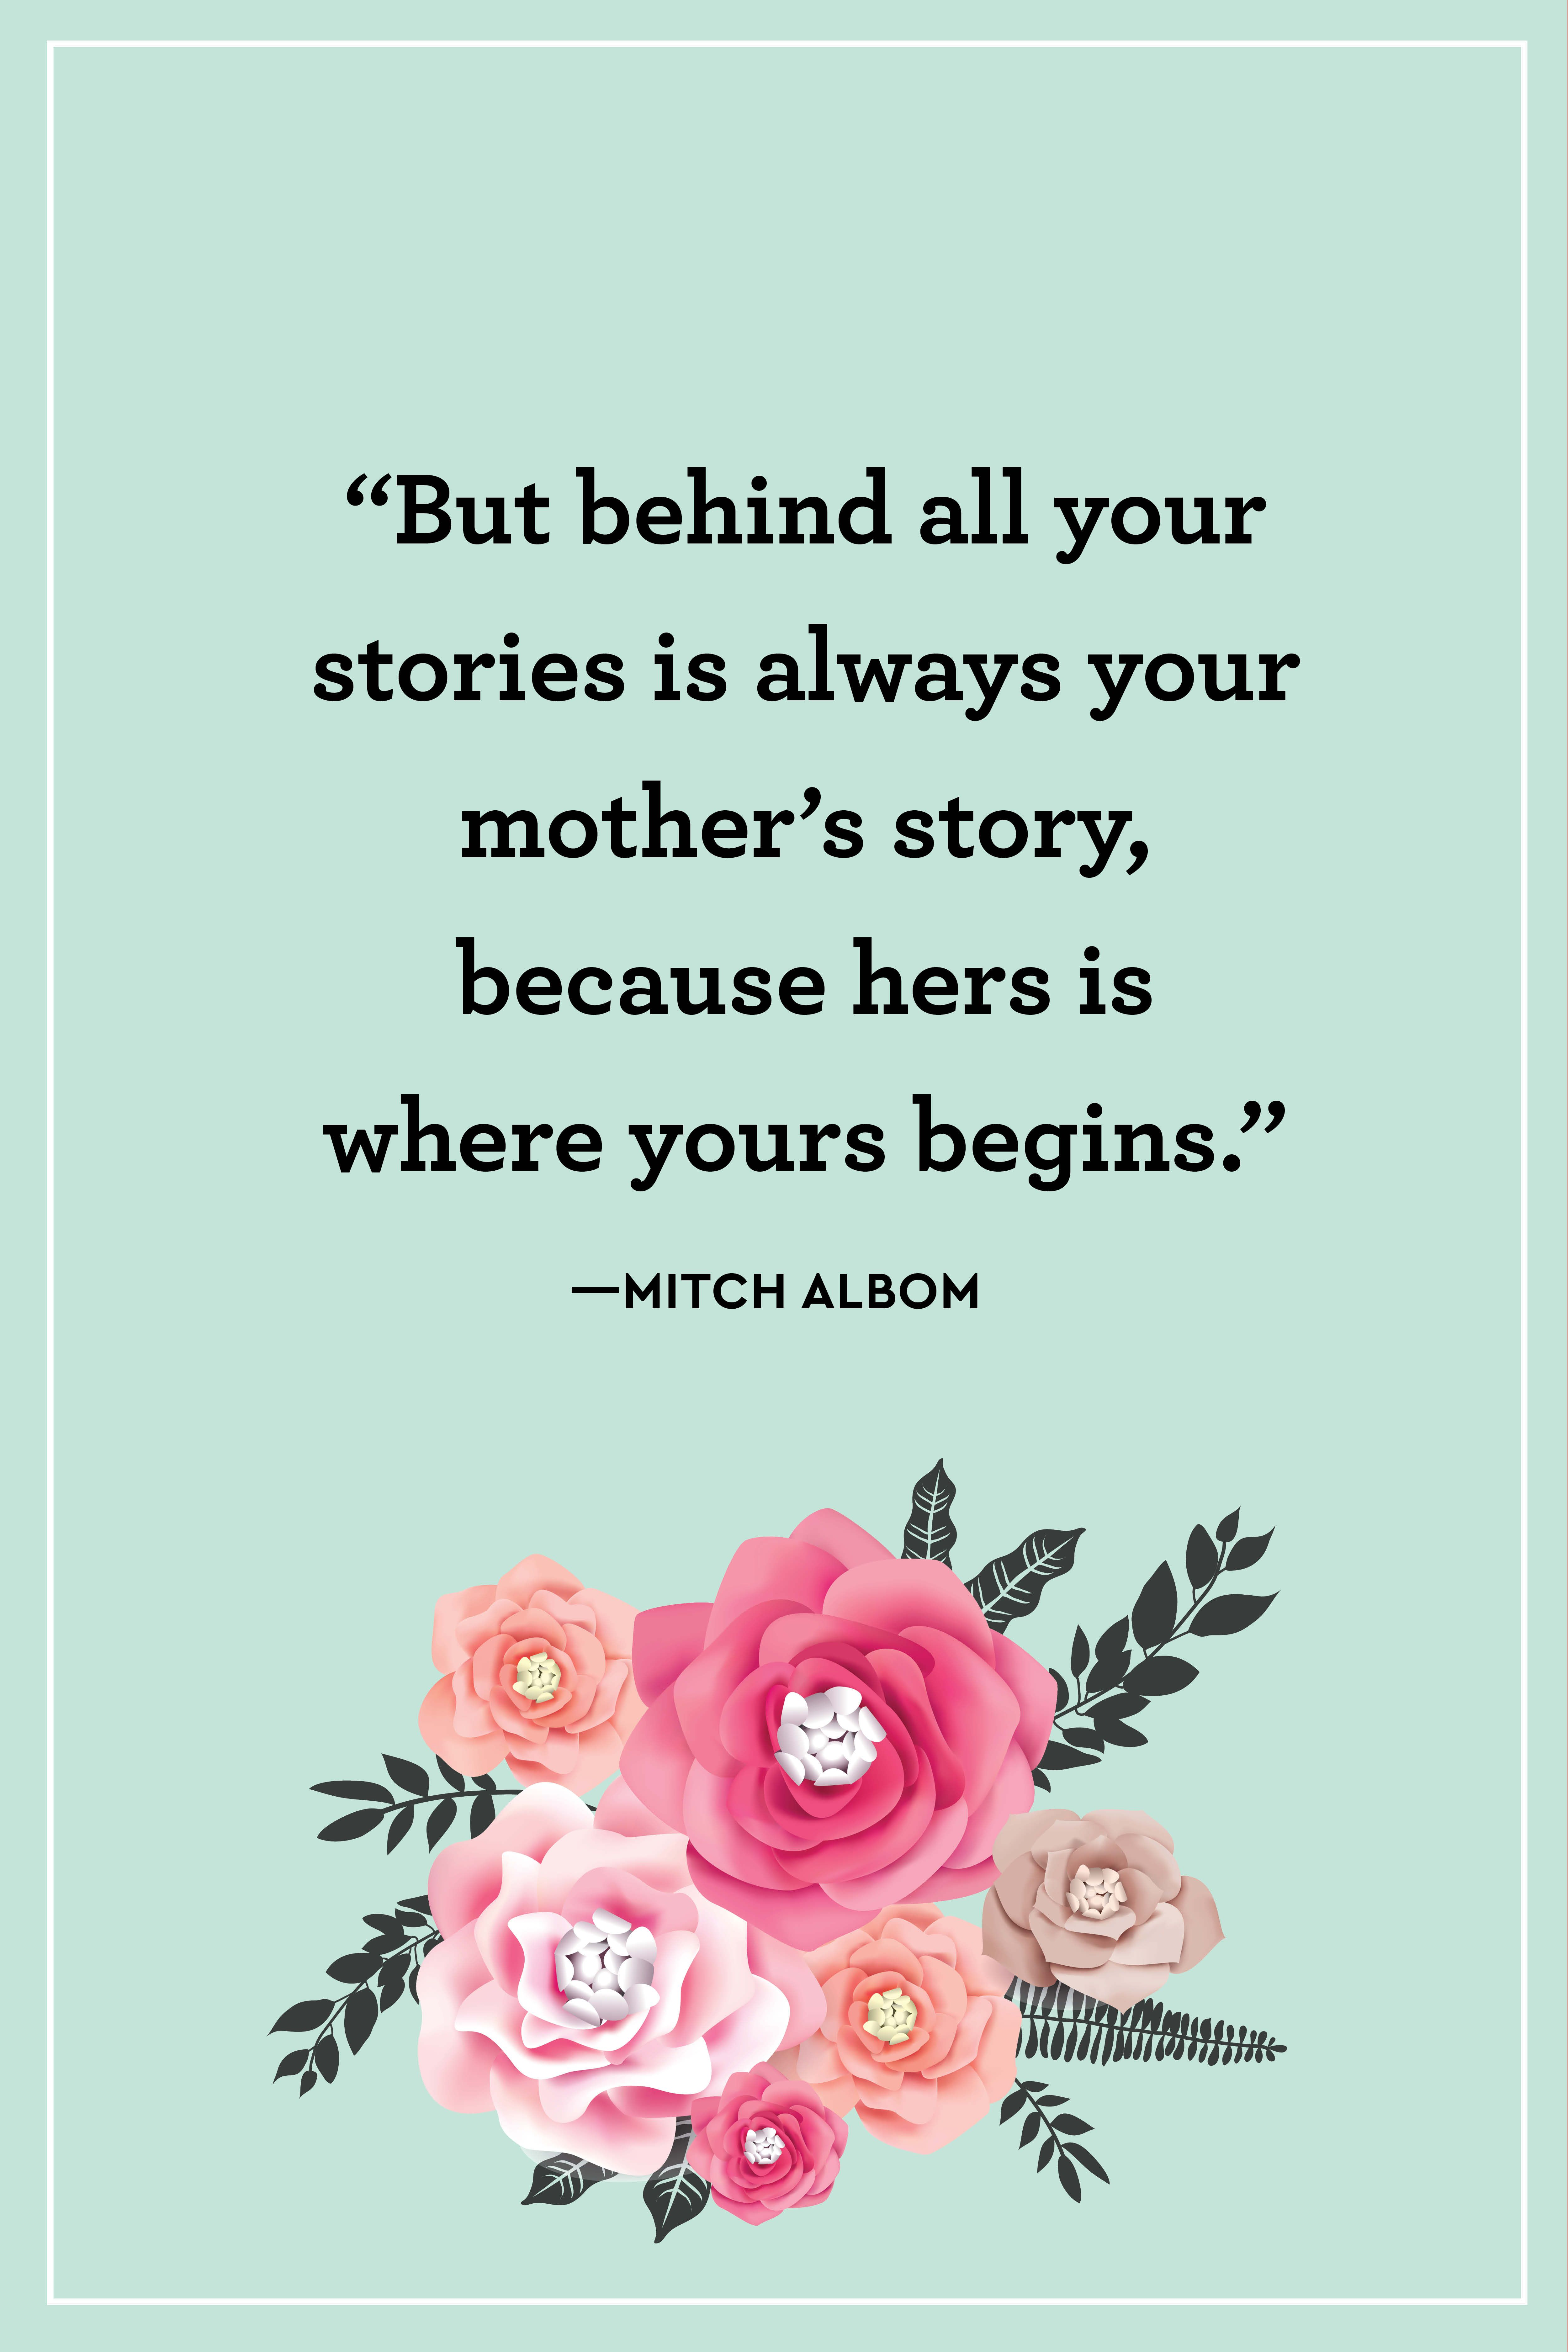 22 Happy Mothers Day Poems & Quotes - Verses for M